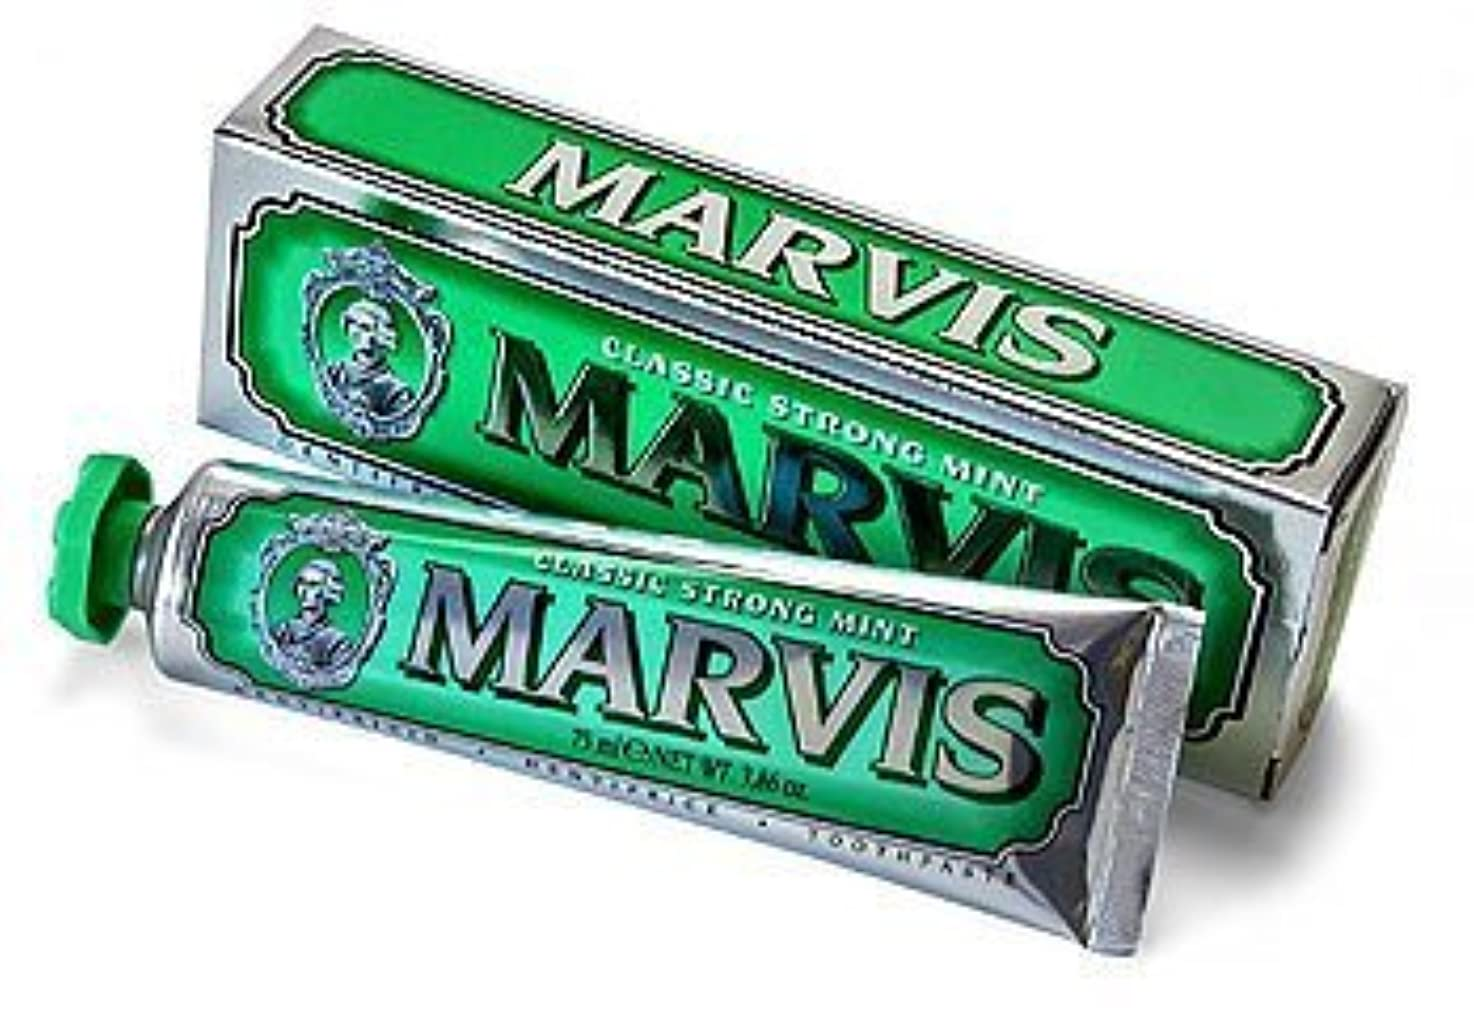 なくなる反射視力Marvis Classic Strong Mint Toothpaste - 75ml by Marvis [並行輸入品]